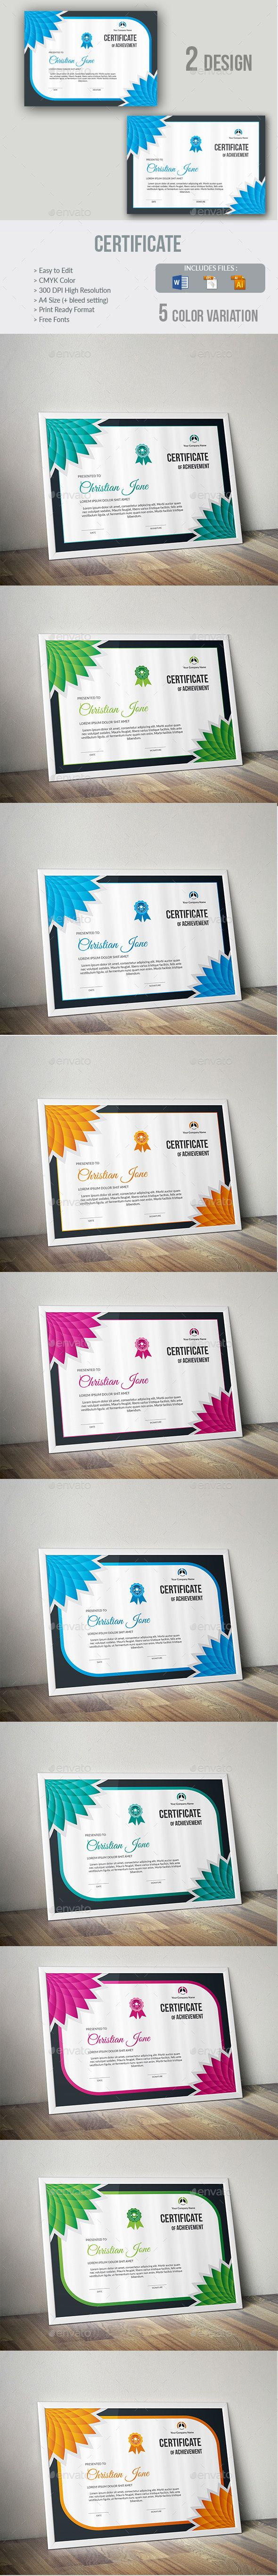 Certificate #awarded #clen  • Download here → https://graphicriver.net/item/certificate/20470390?ref=pxcr